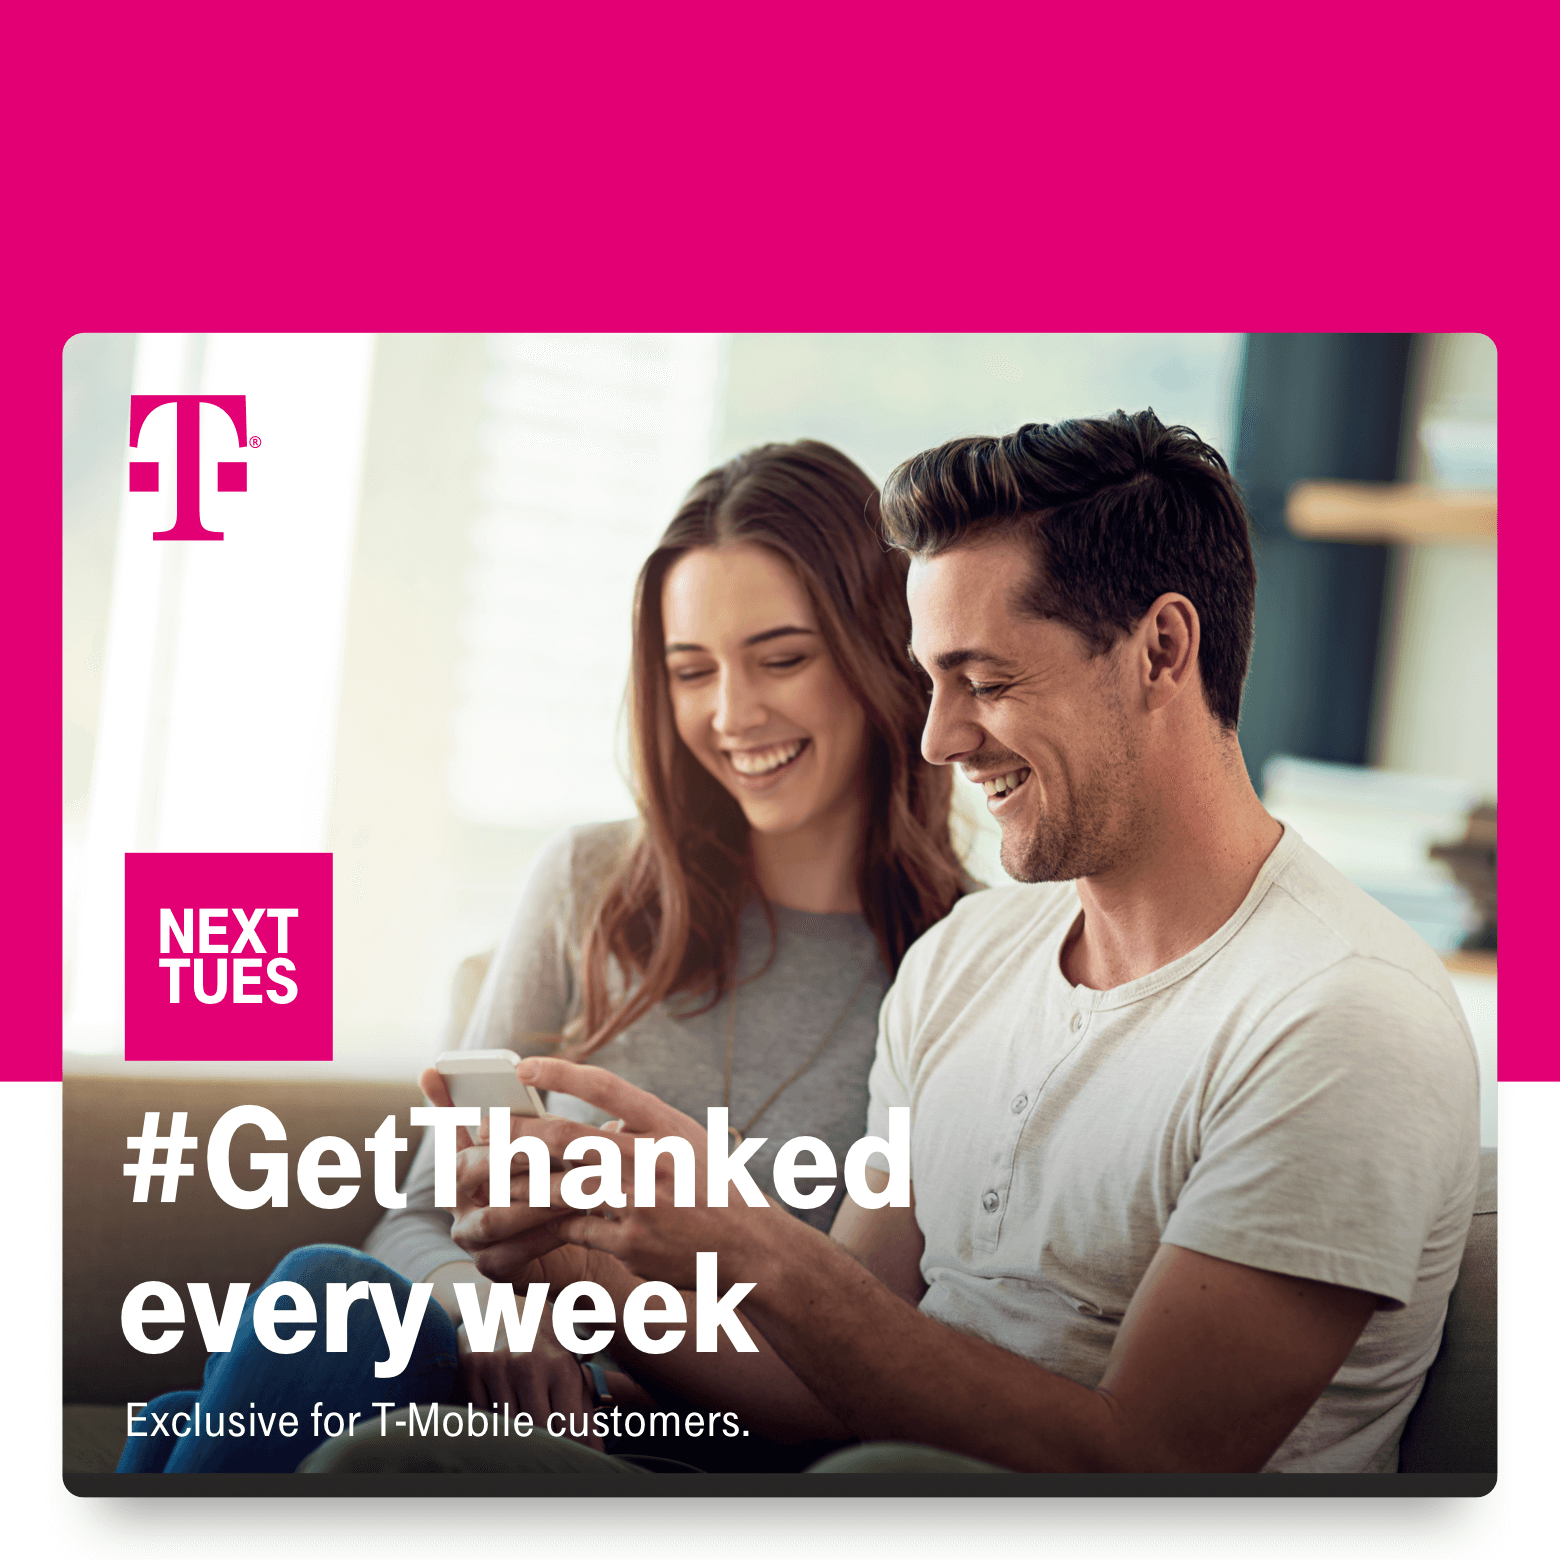 T-Mobile. Next Tuesday. #GetThanked every week. Exclusive for T-Mobile customers.